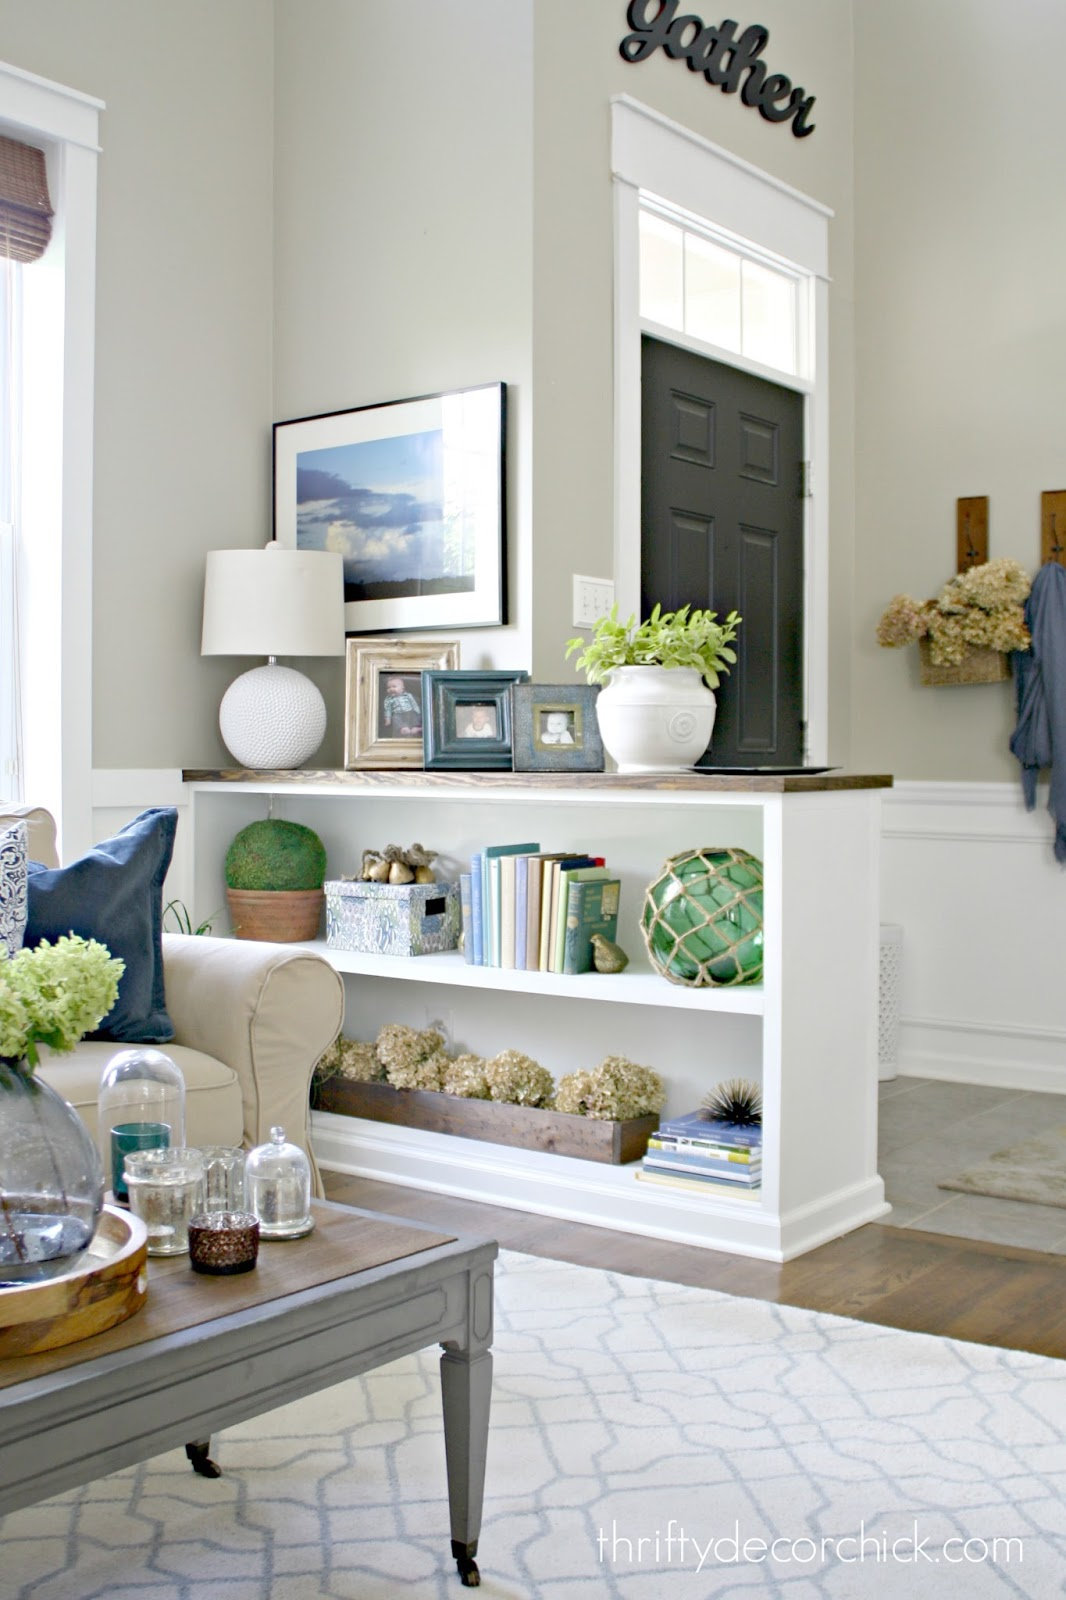 How To Give A New House Tons Of Character Thrifty Decor